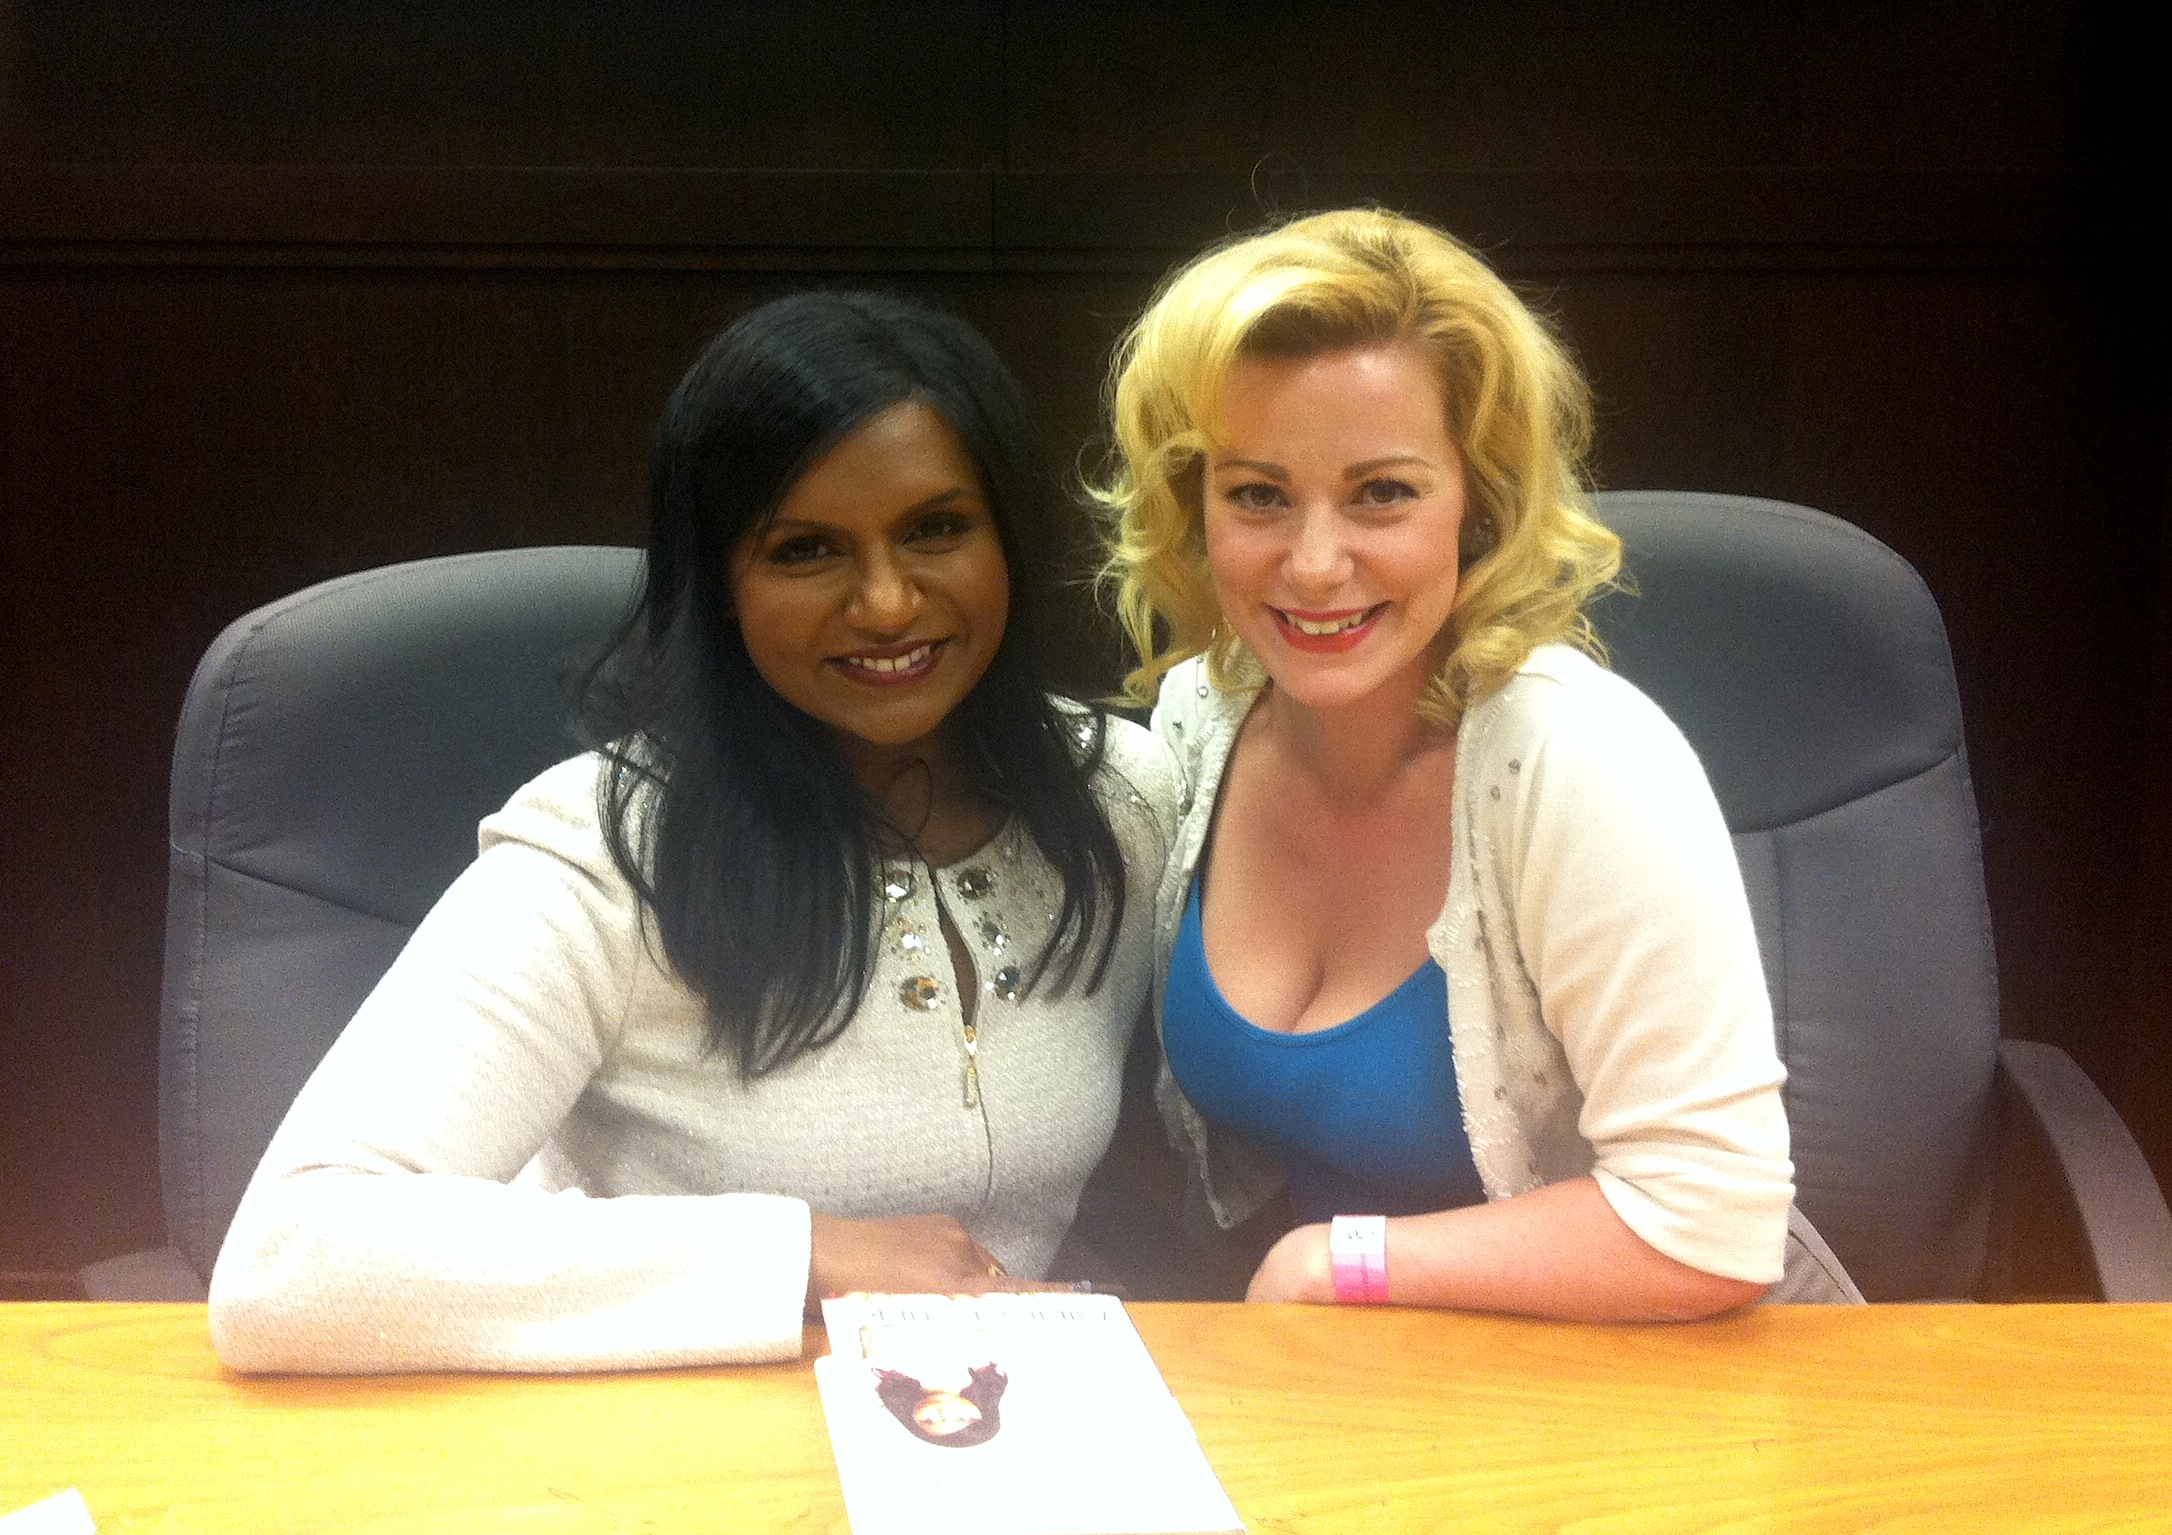 Is Everyone Hanging Out With out Me? Book Signing, Mindy Kaling & Angela Ingersoll